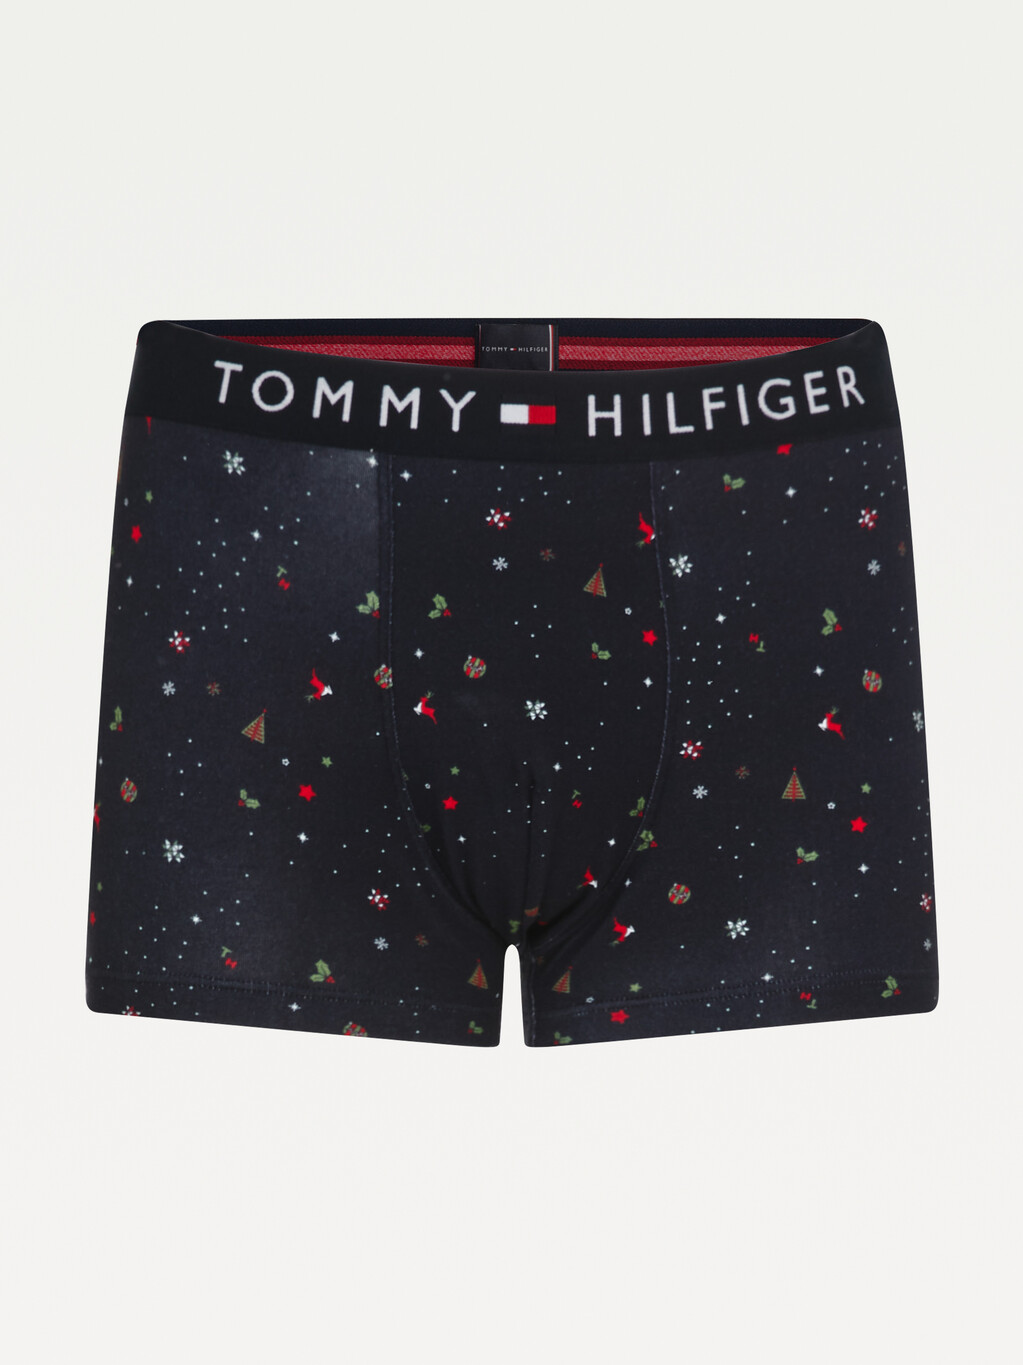 All-Over Print Cotton Trunks